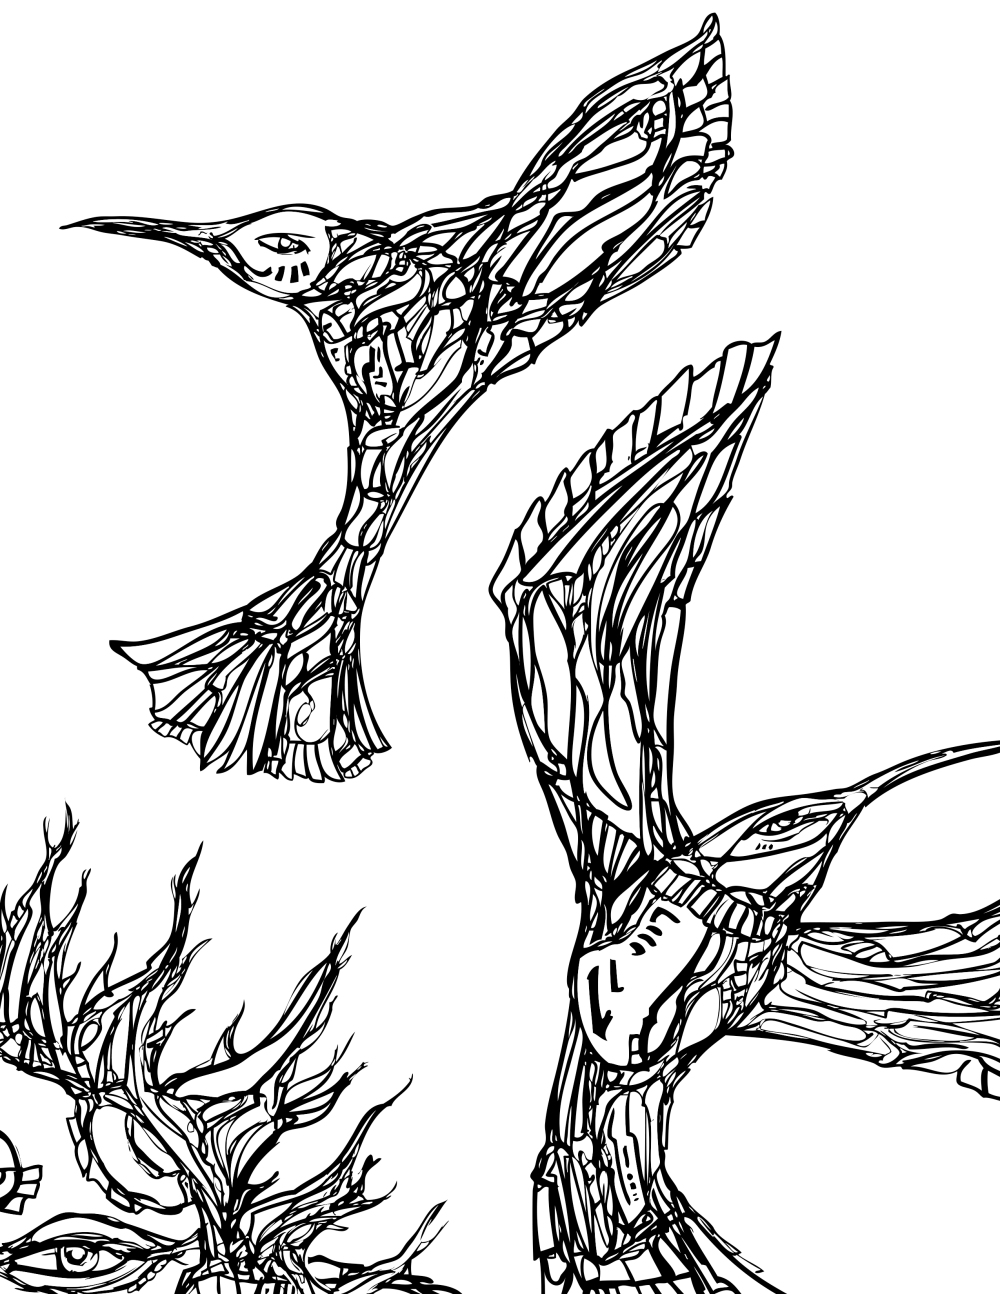 NEW CREATE SPACE WATERHUMMINGBIRD HOUSE COLORING BOOK